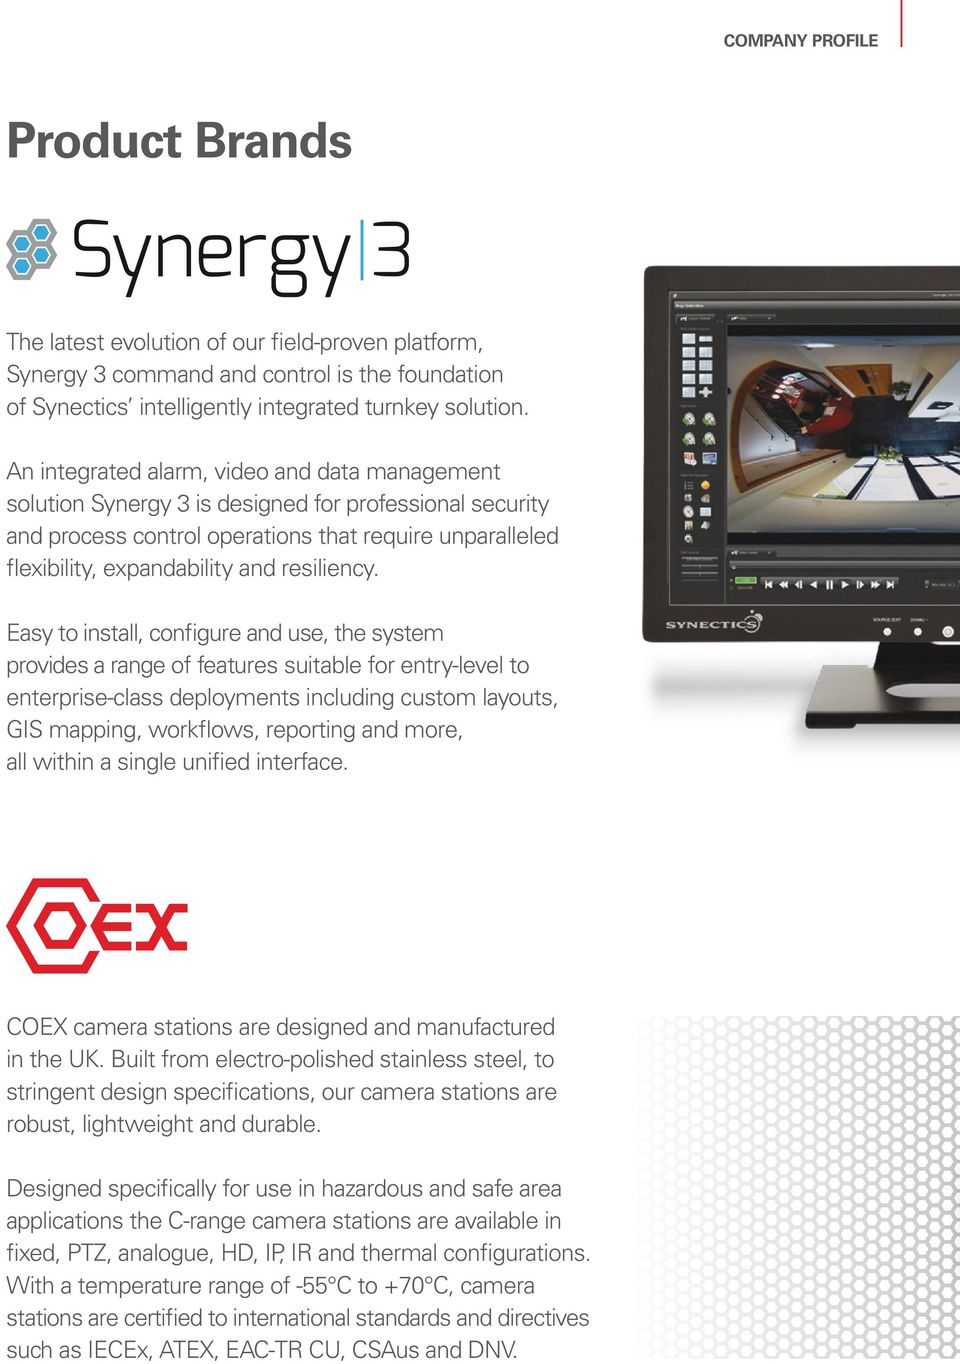 COMPANY PROFILE  Integrated end-to-end surveillance control systems